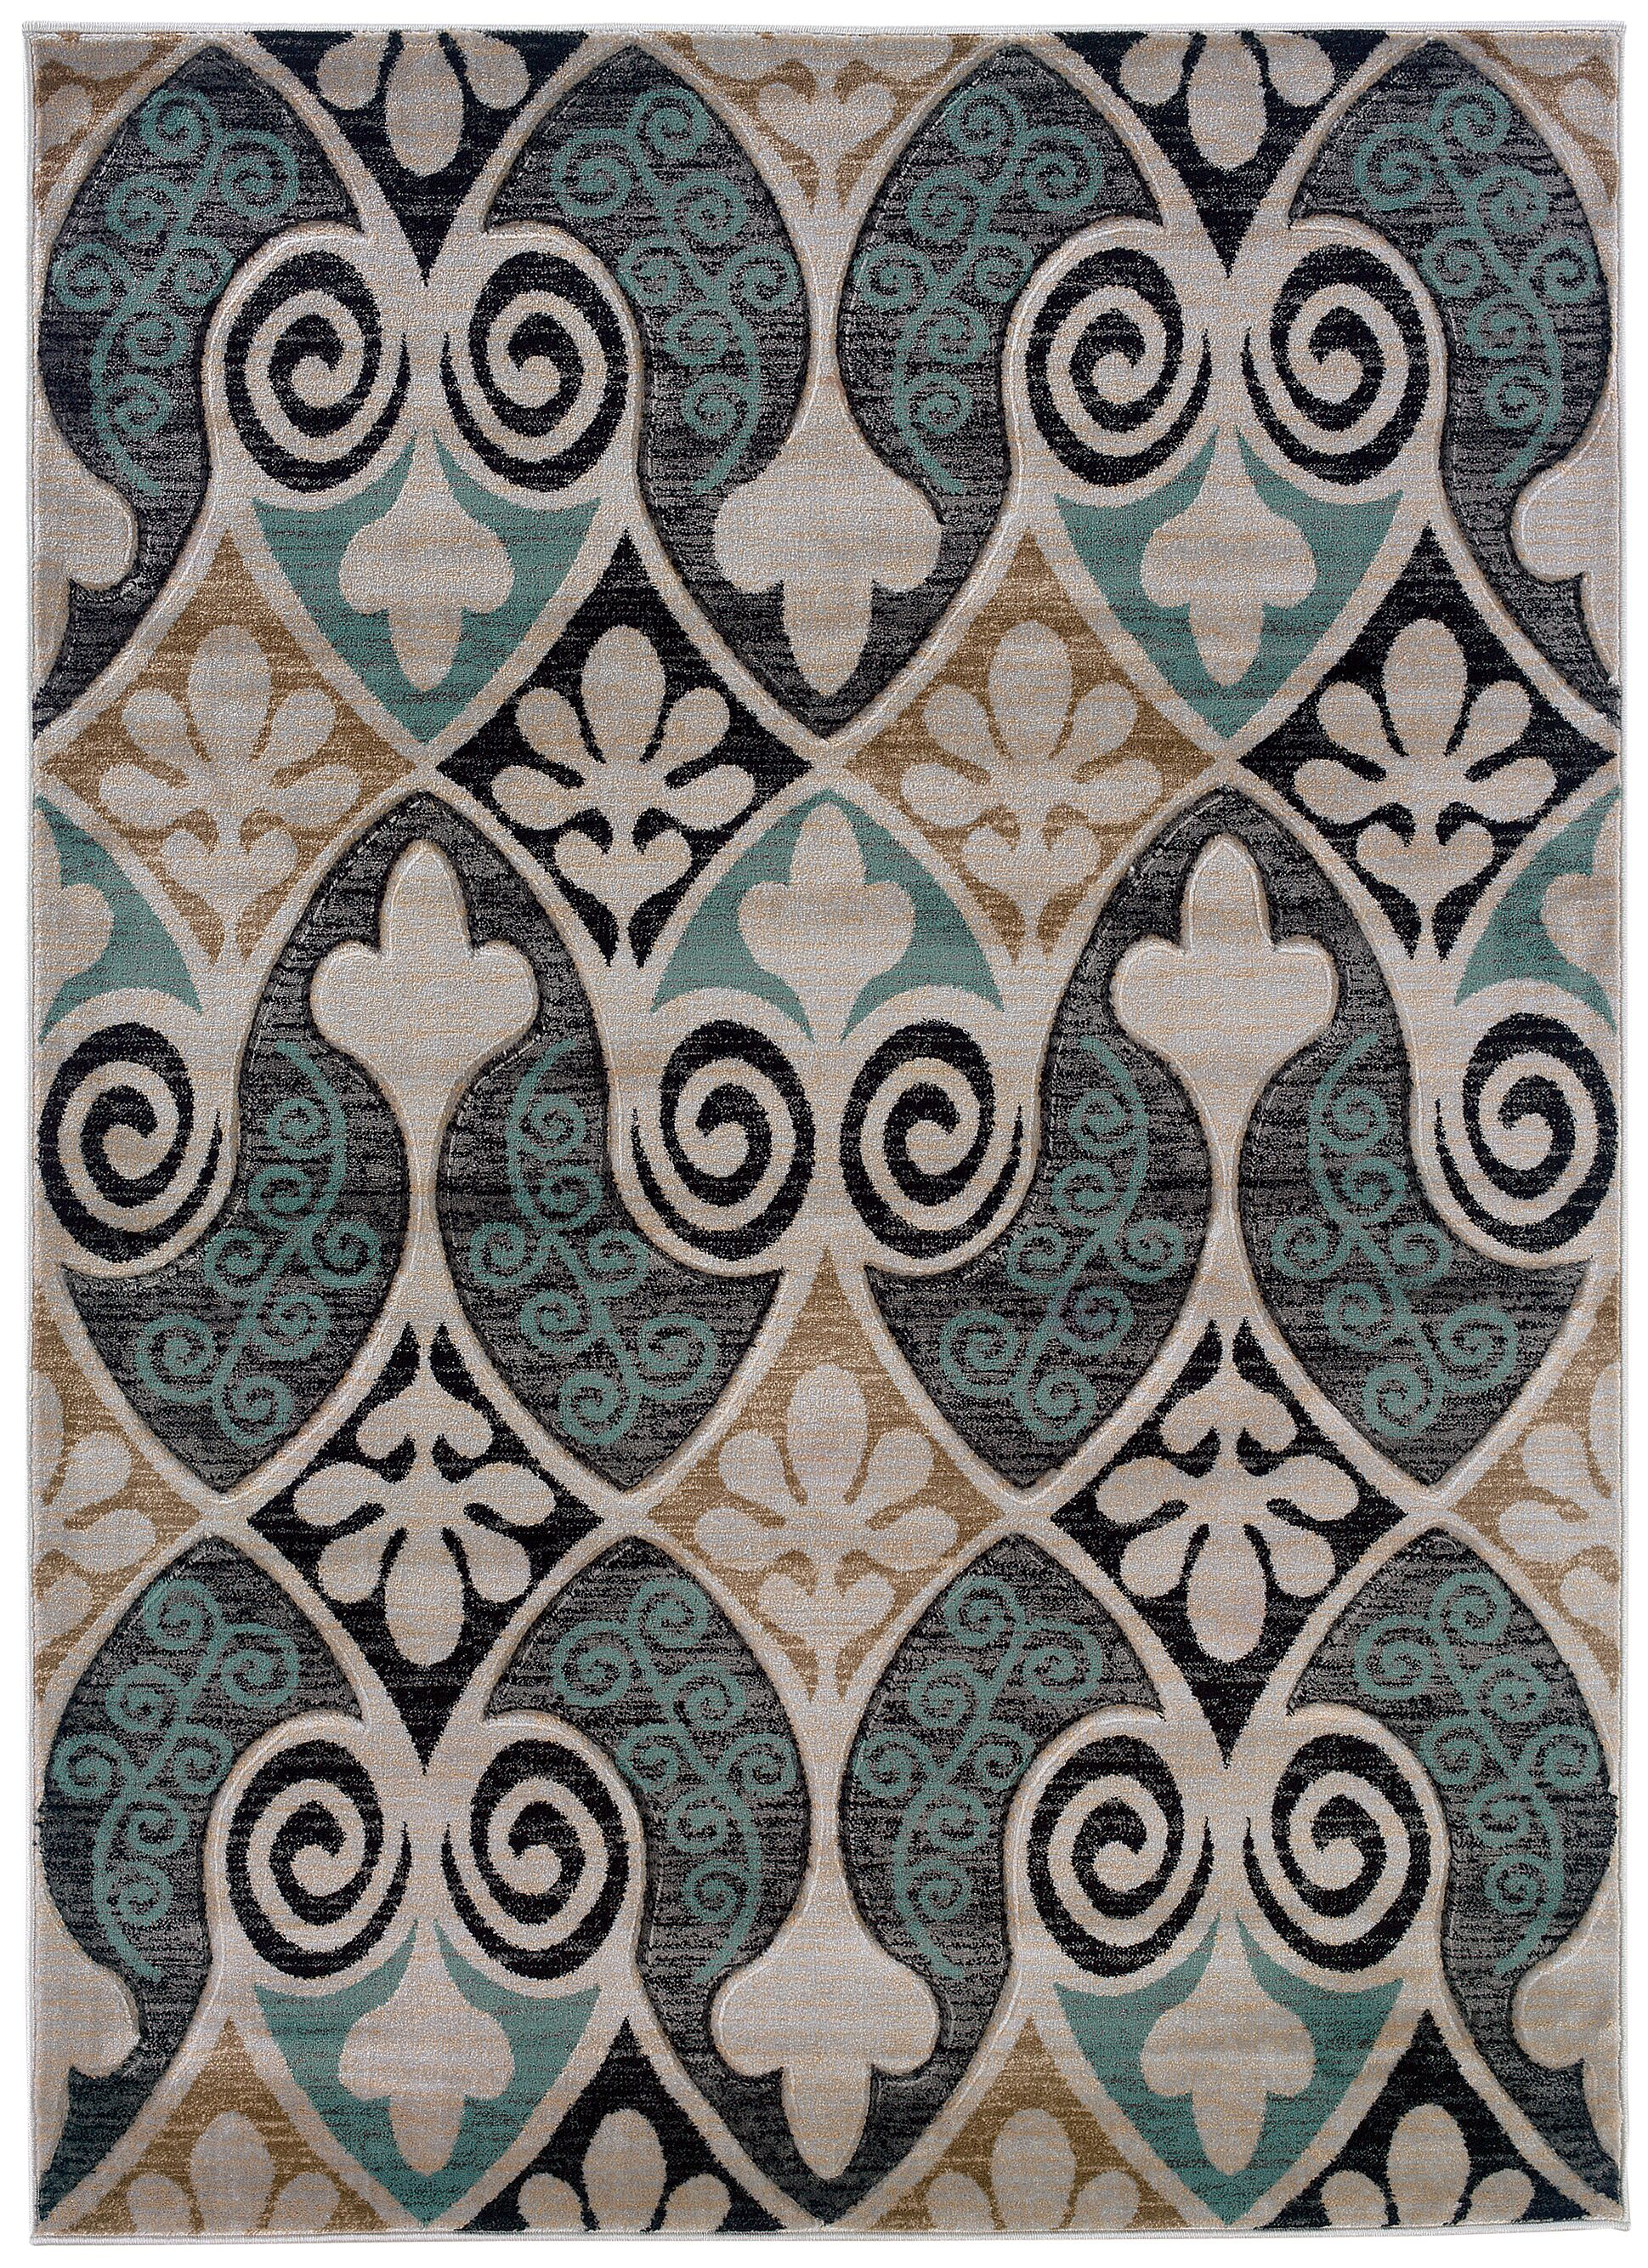 Carlee Ivory Area Rug Rug Size: Rectangle 8' x 10'3